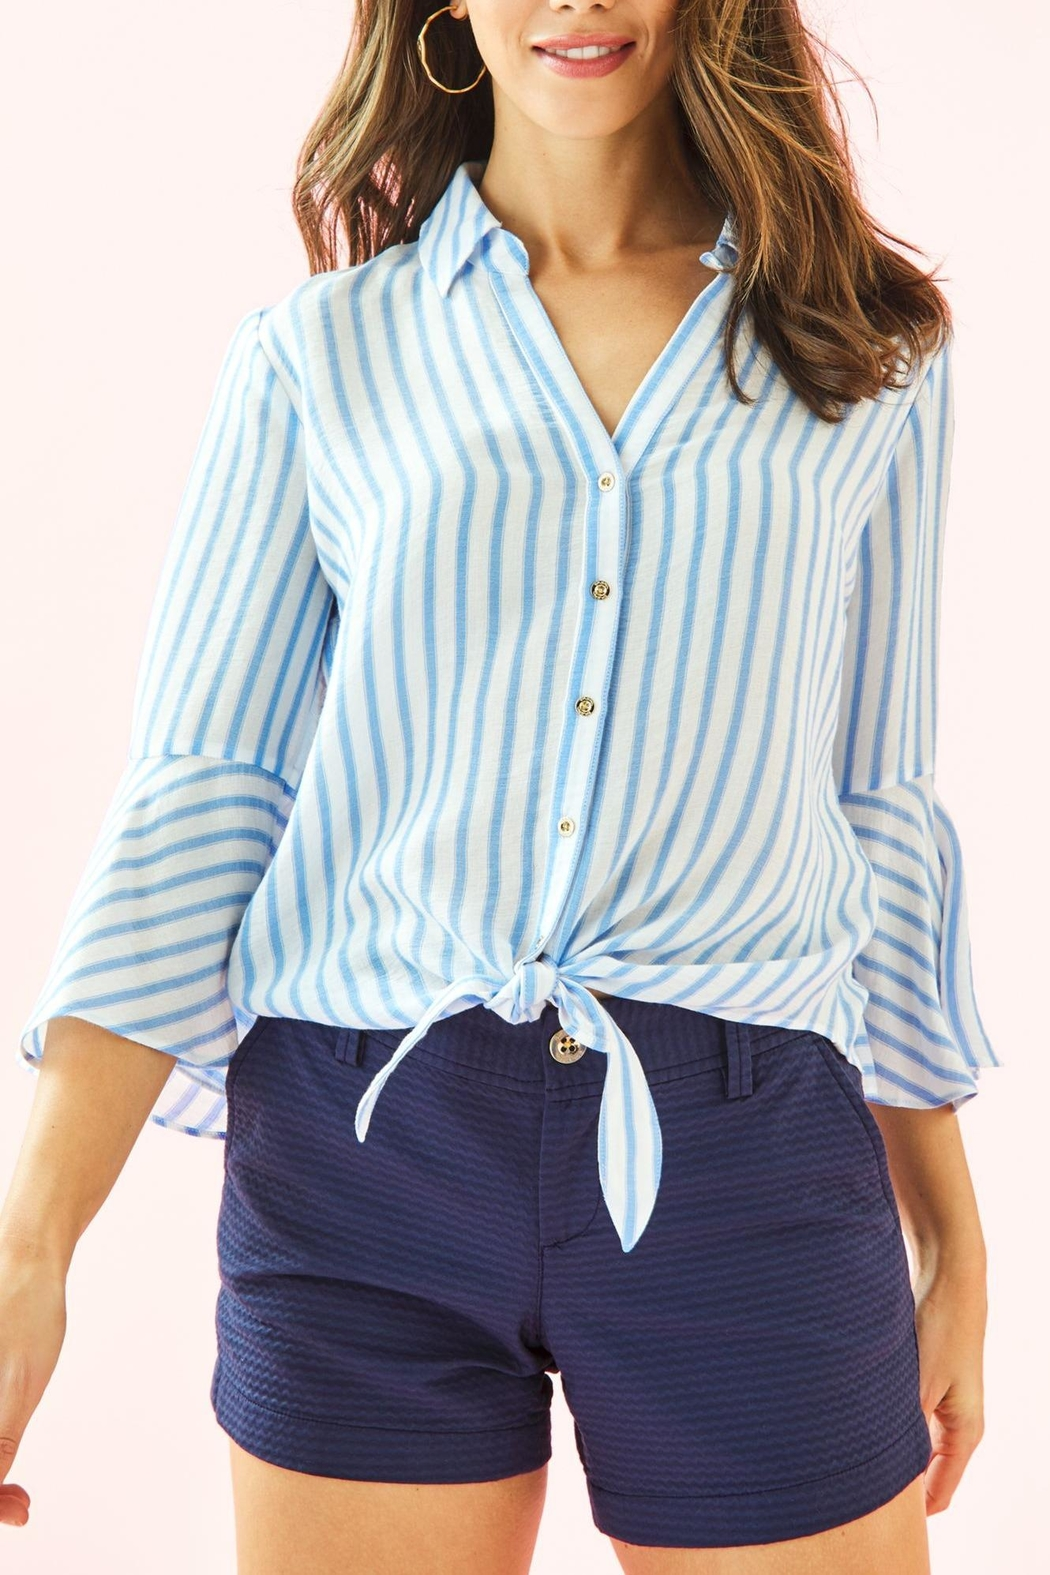 Lilly Pulitzer Lysa Tie-Front Top - Main Image